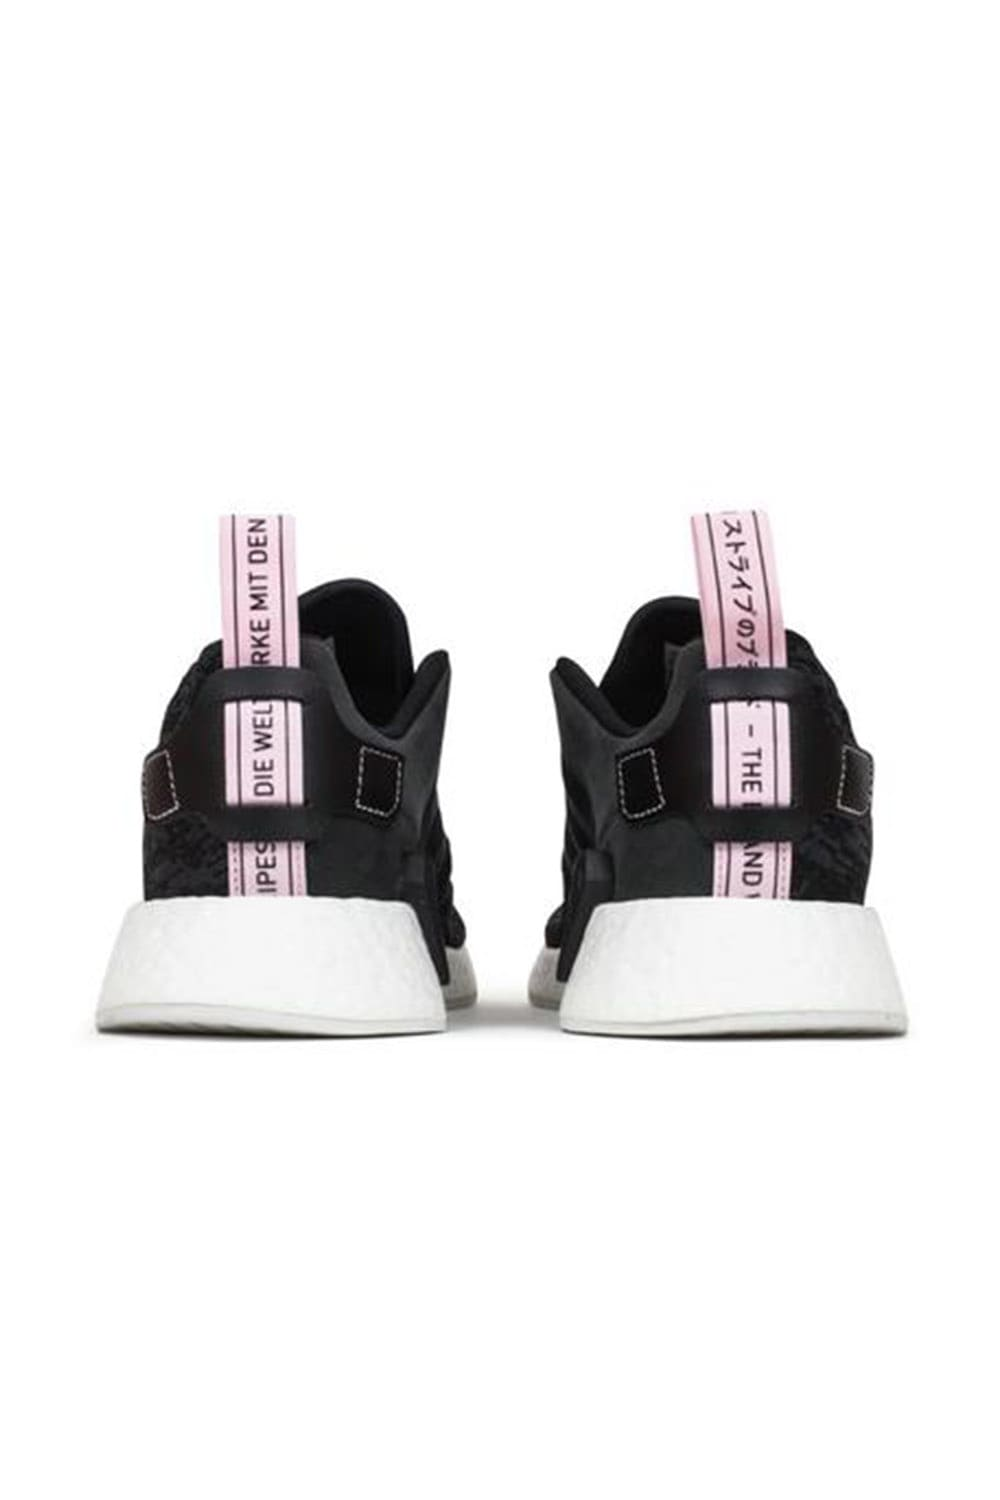 hot sale online 62cf2 e529d Adidas NMD R2 W 4 - BY9314